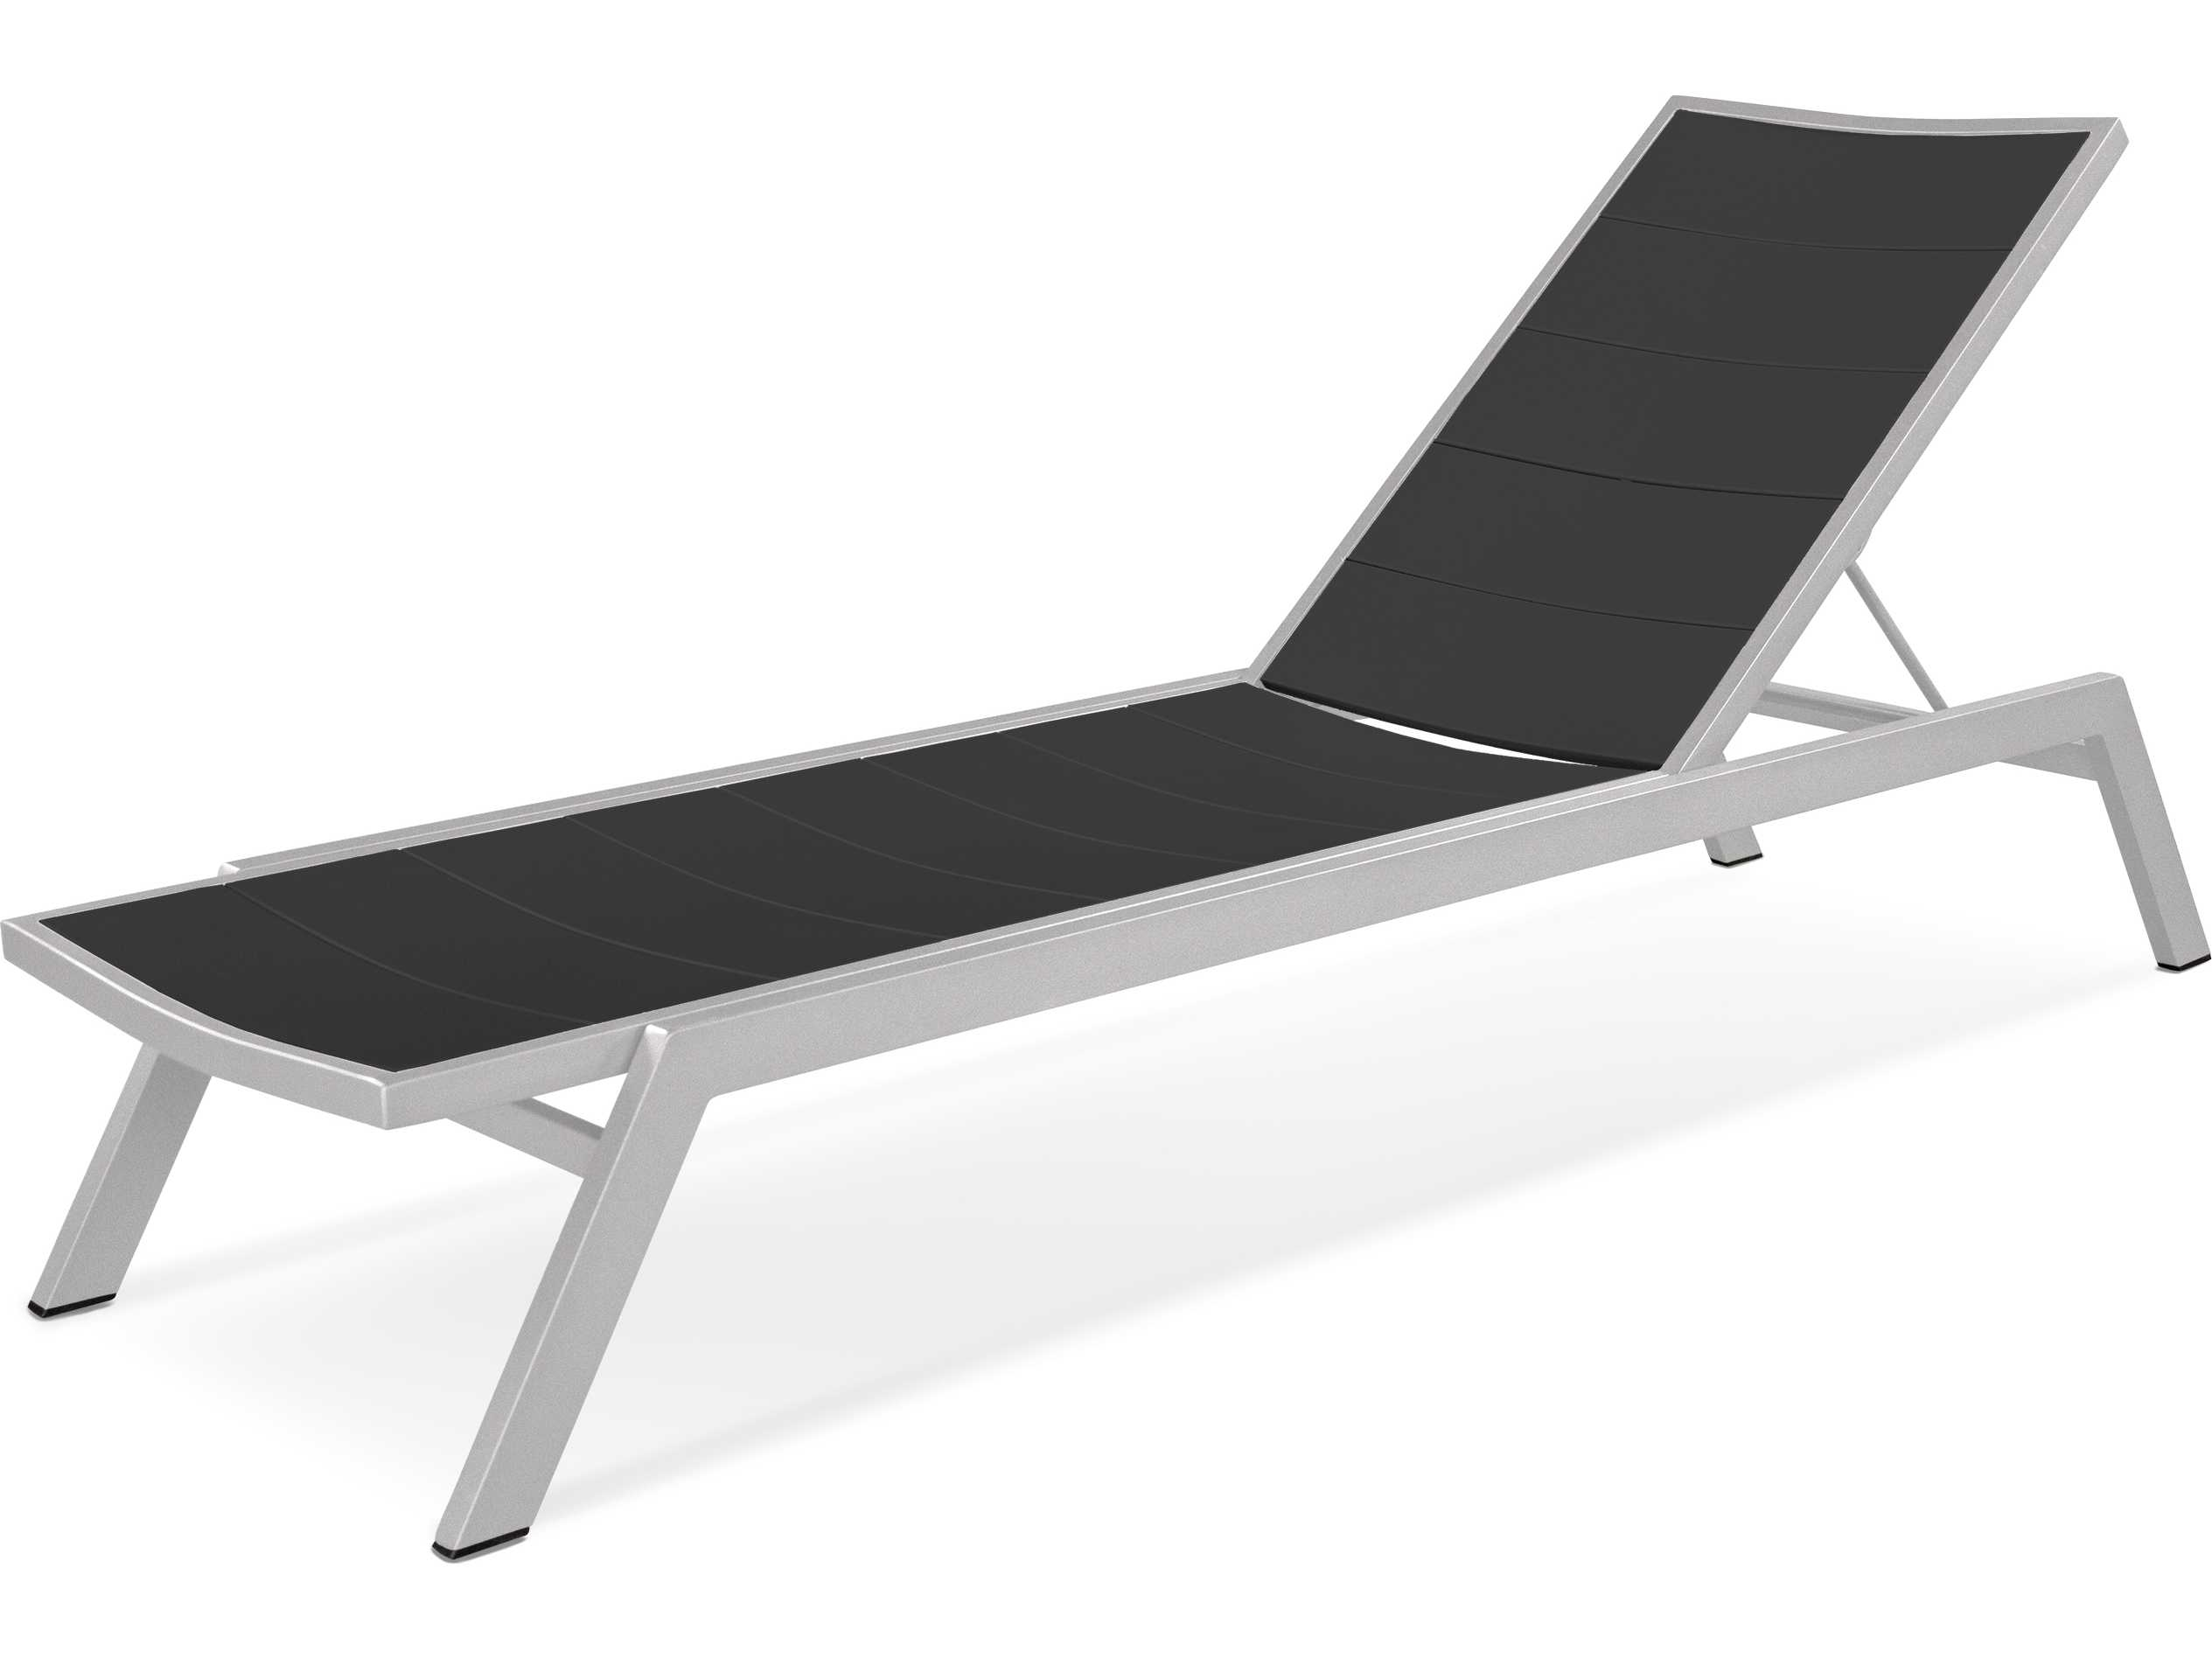 Polywood metro aluminum adjustable chaise lounge ac120 for Chaise lounge aluminum